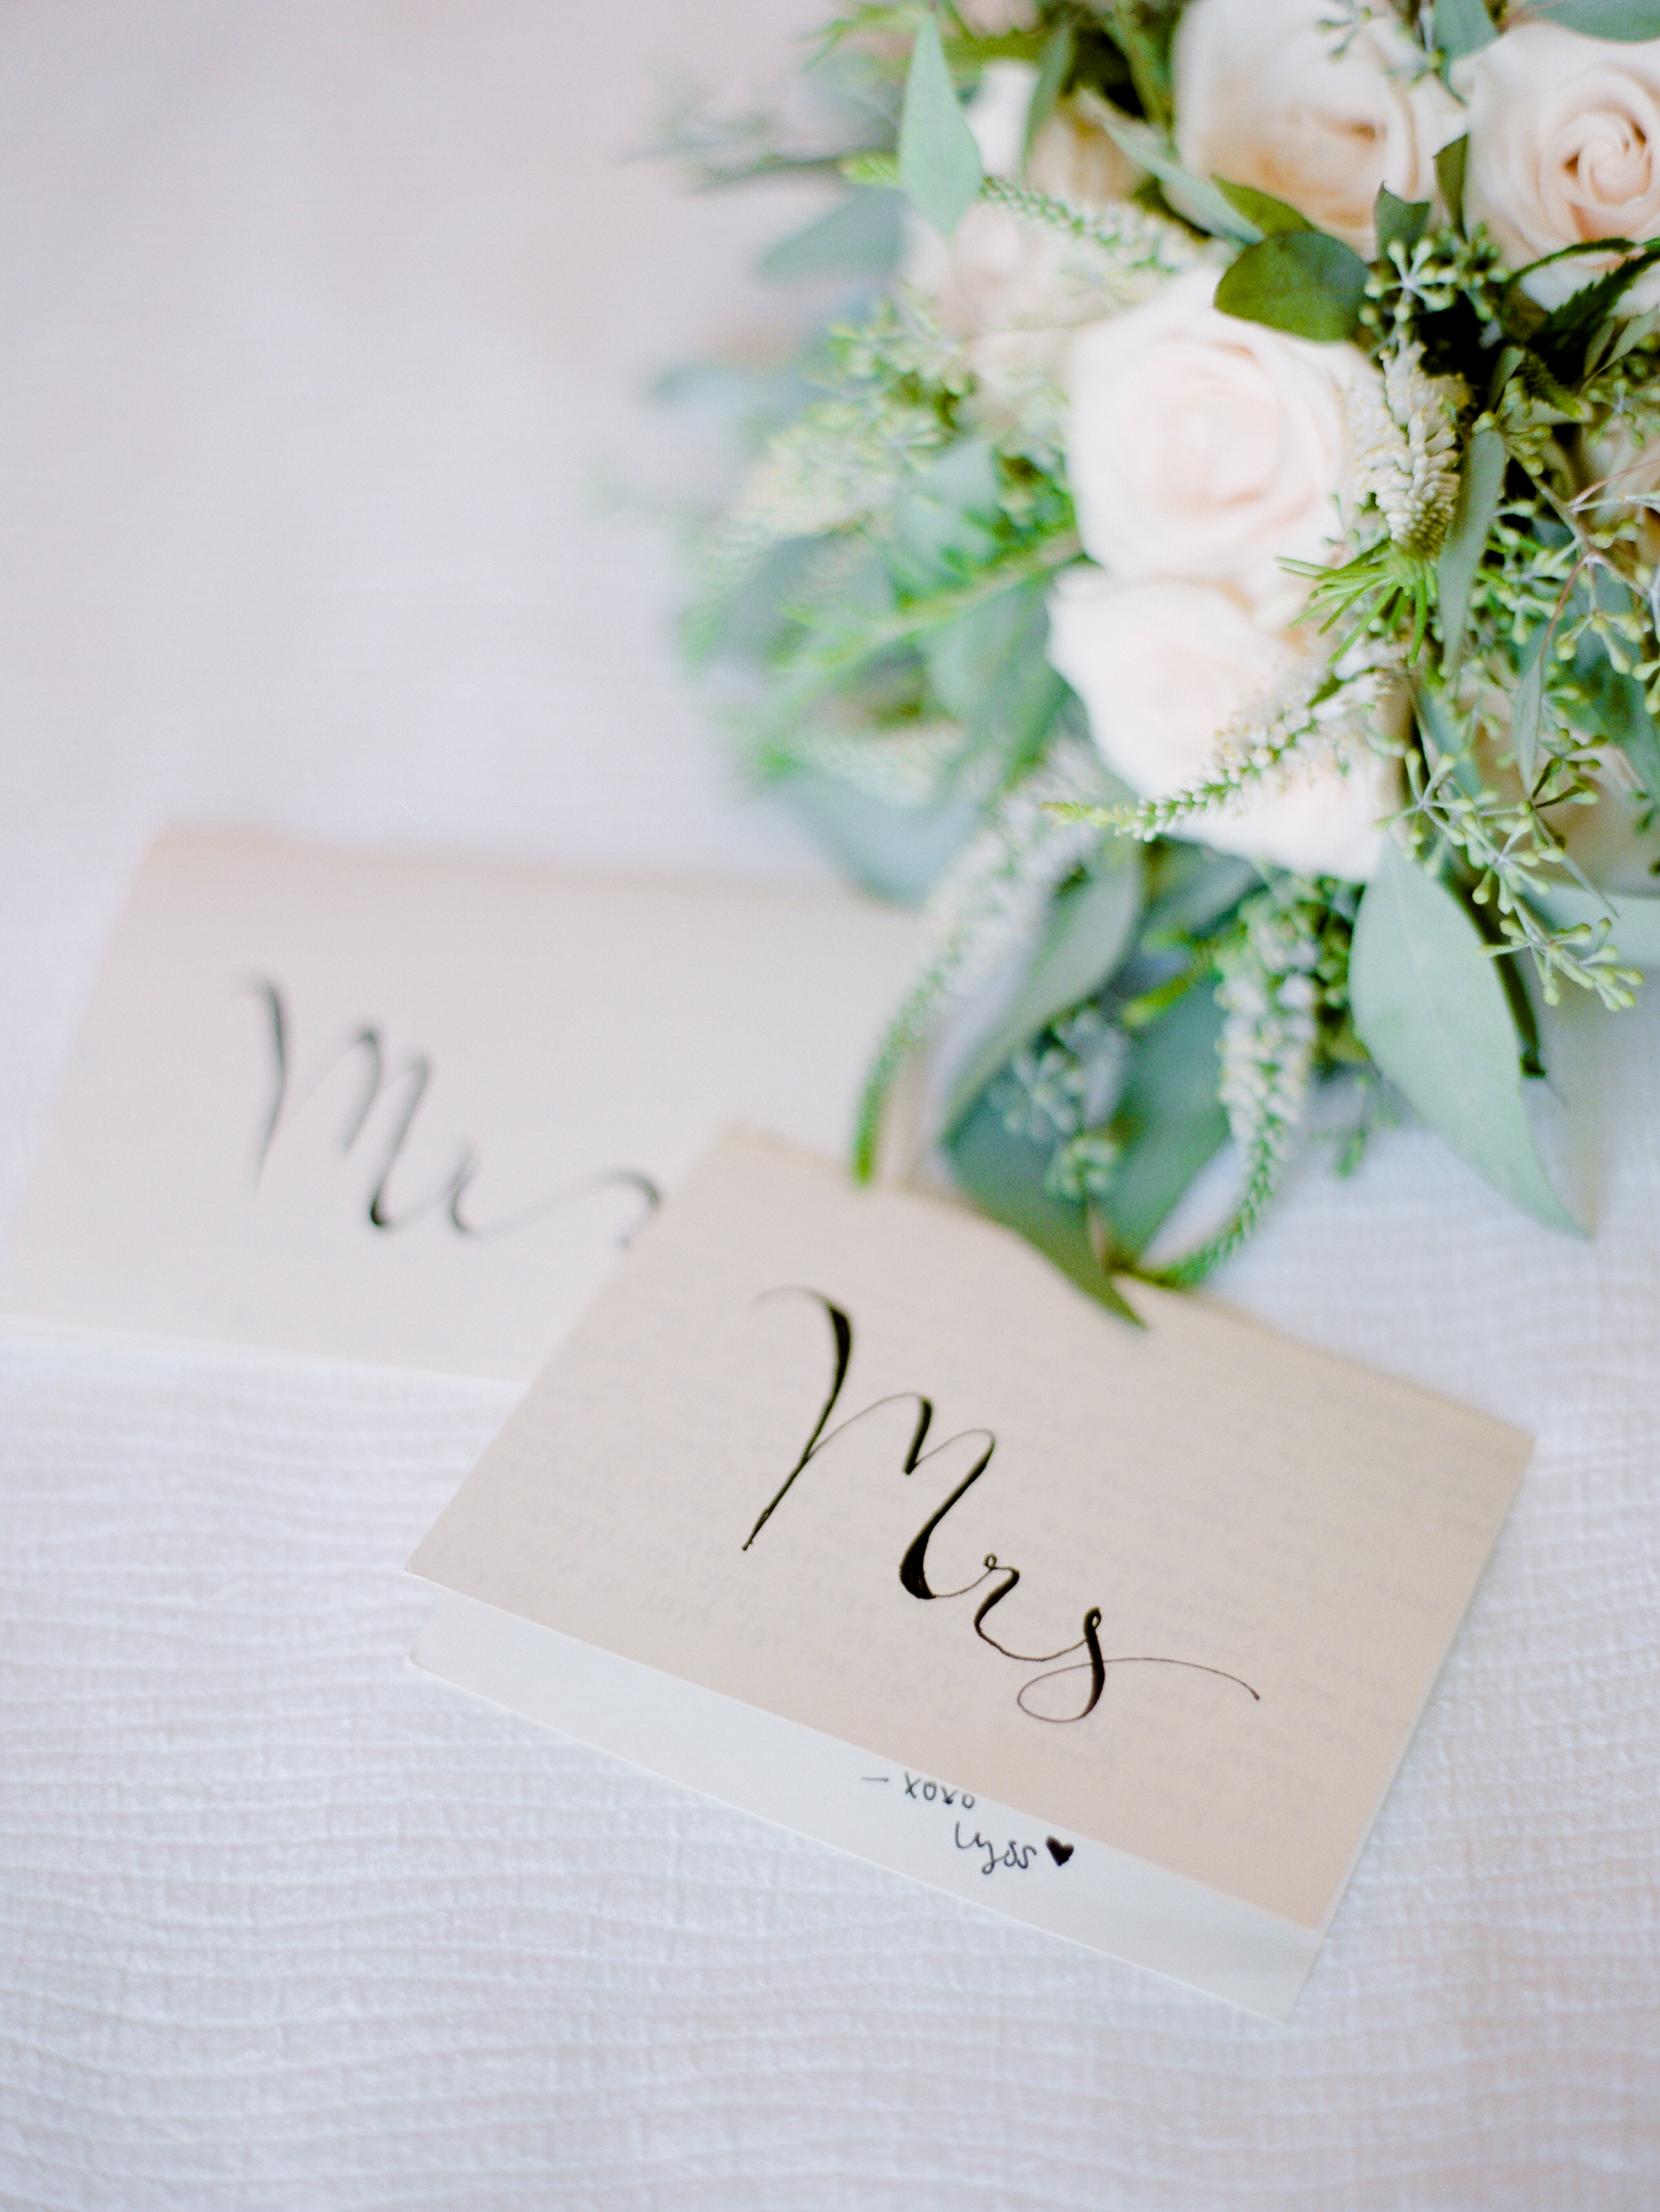 handwritten vows